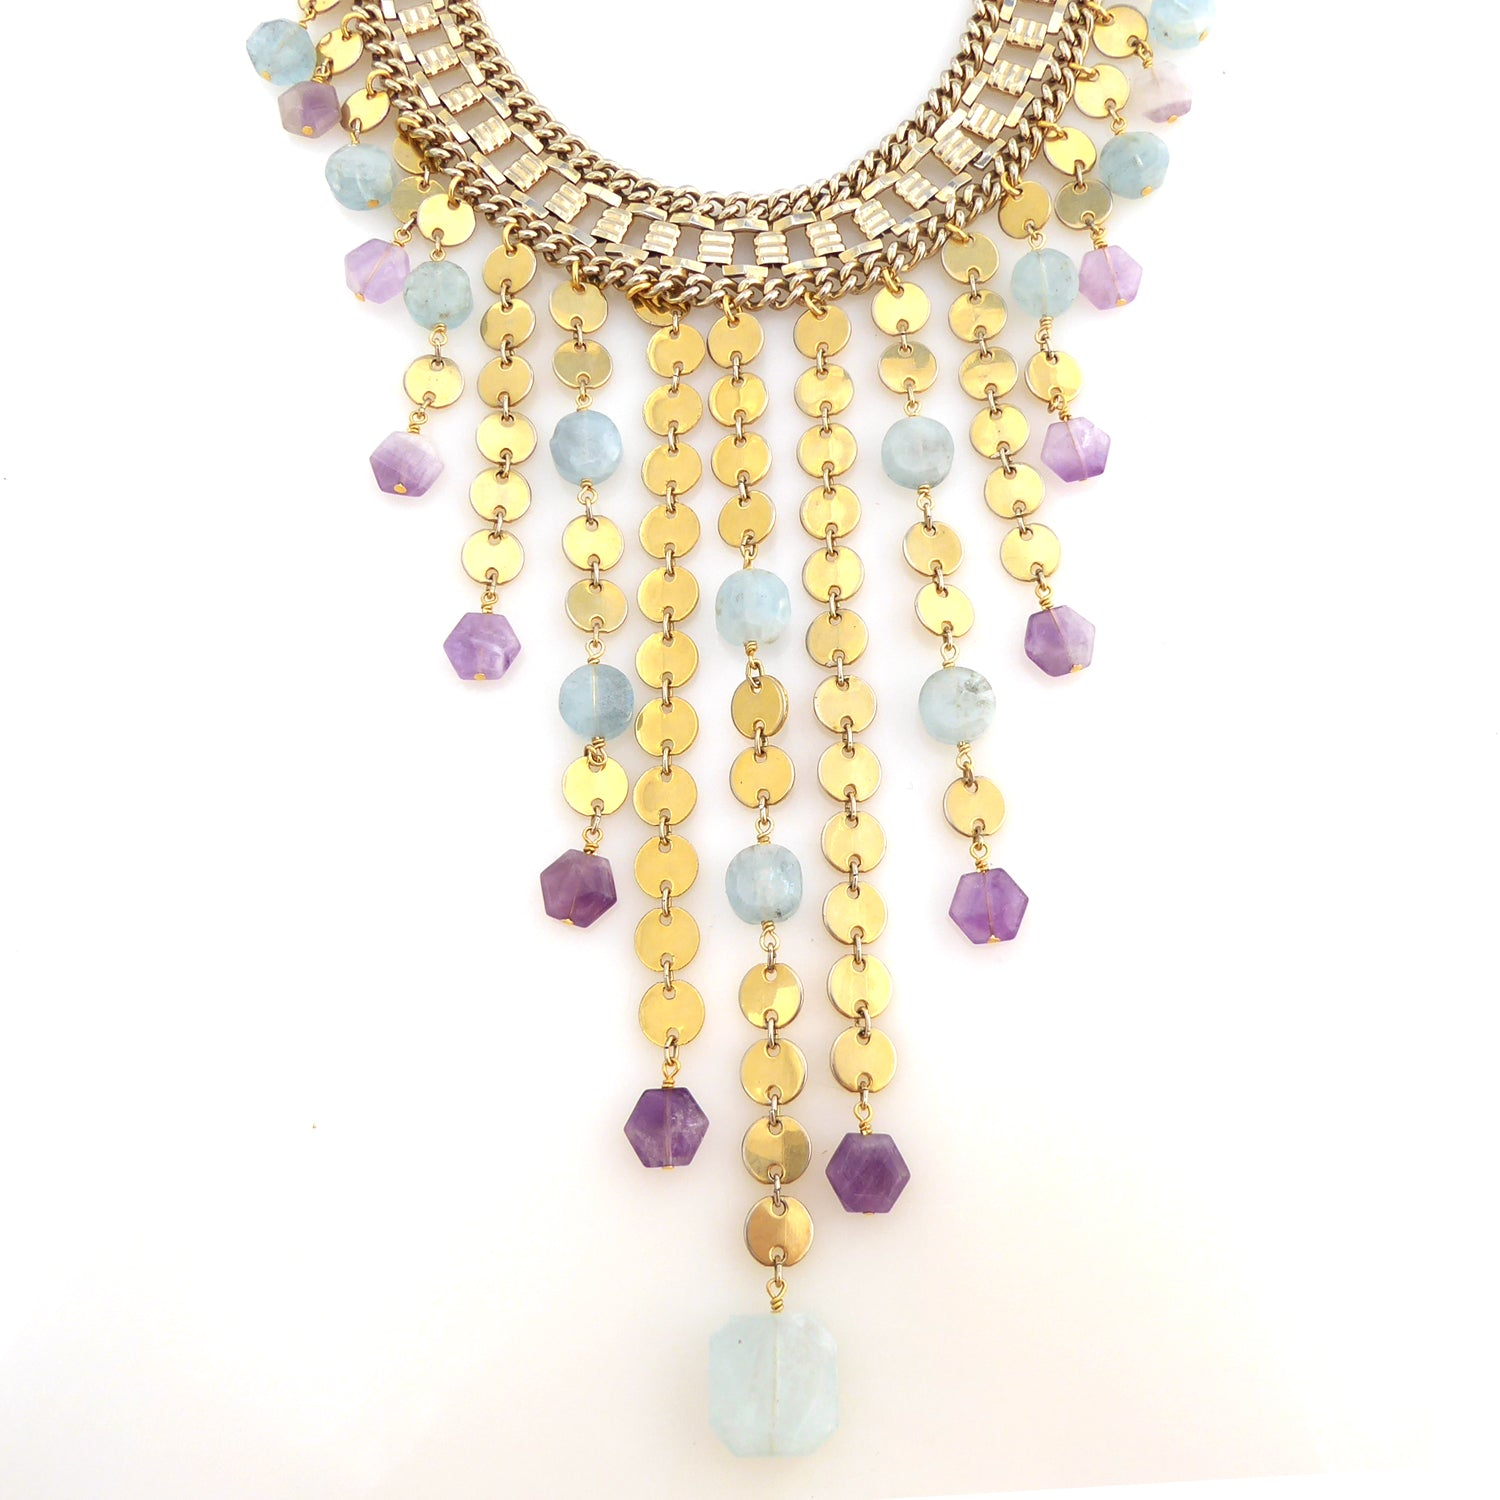 Carmeline aquamarine and amethyst necklace by Jenny Dayco 1